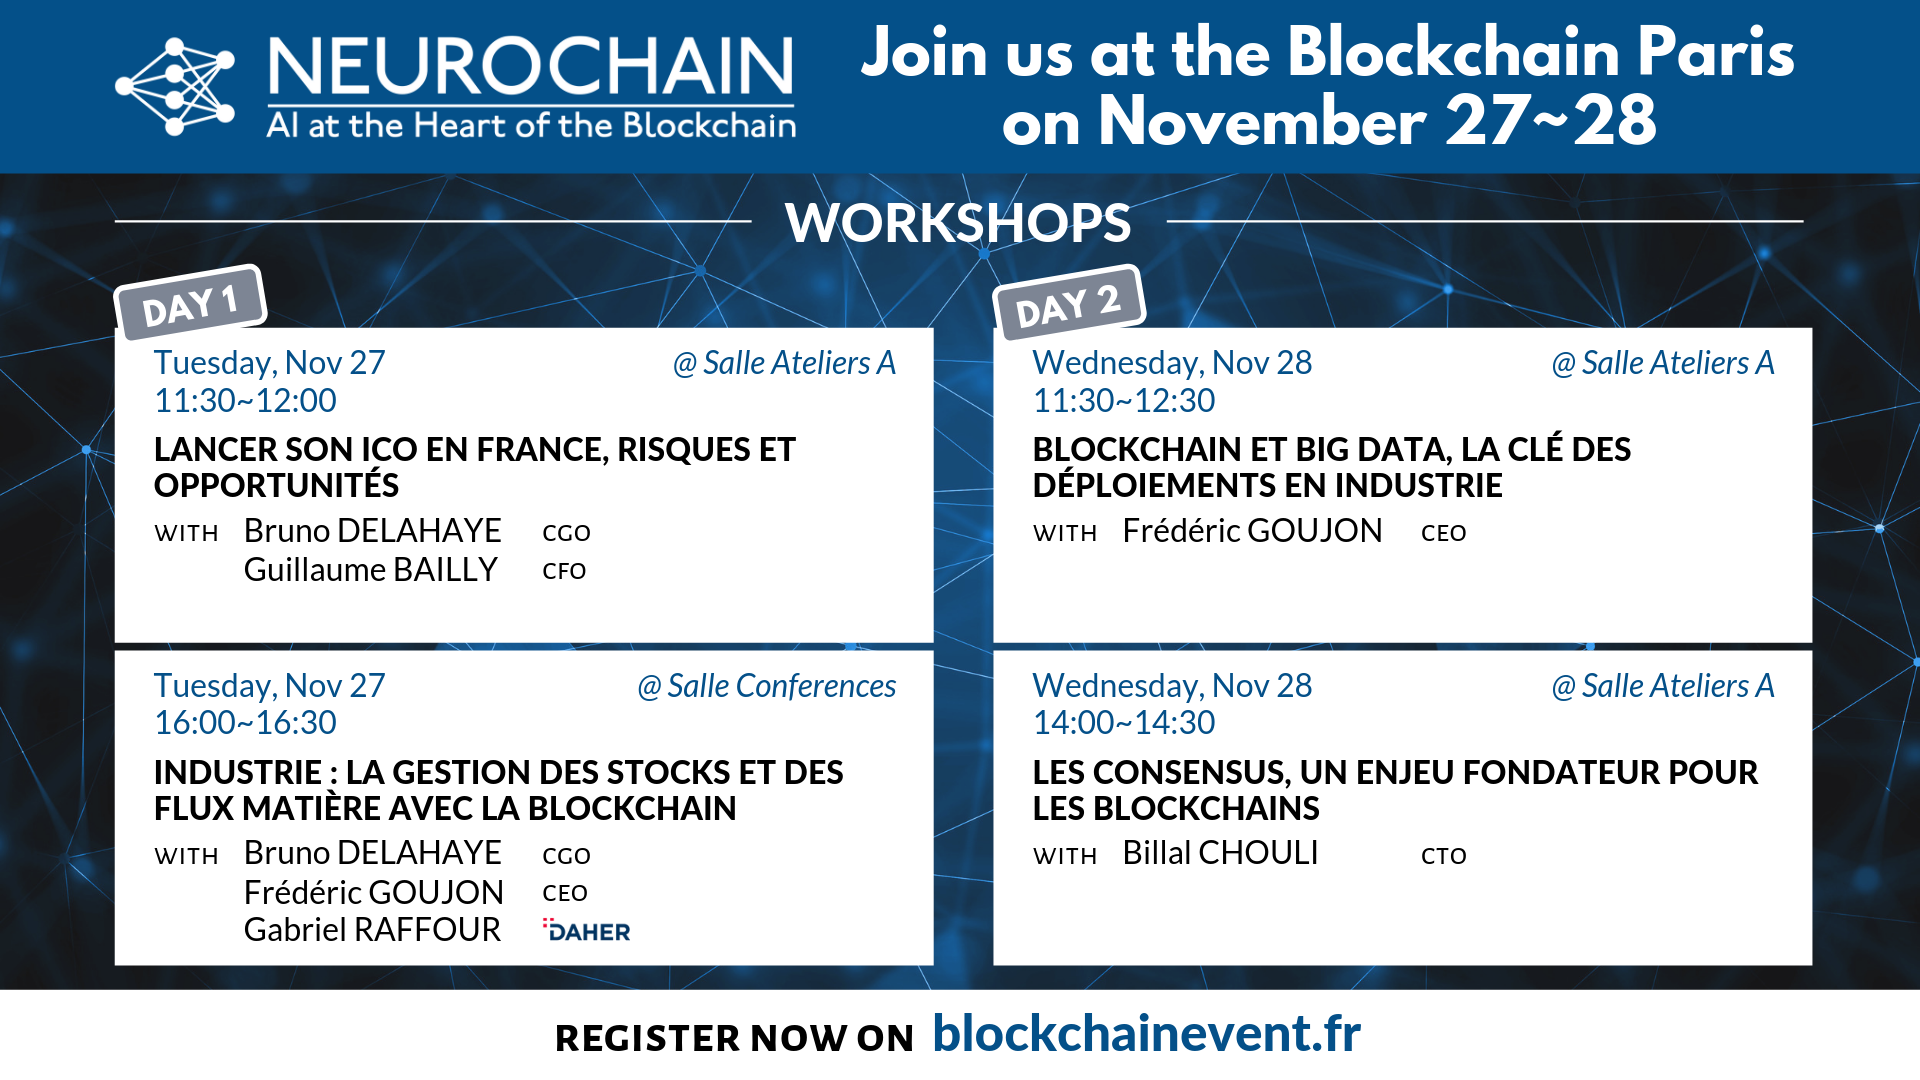 Join us at the Blockchain Paris on November 27_28